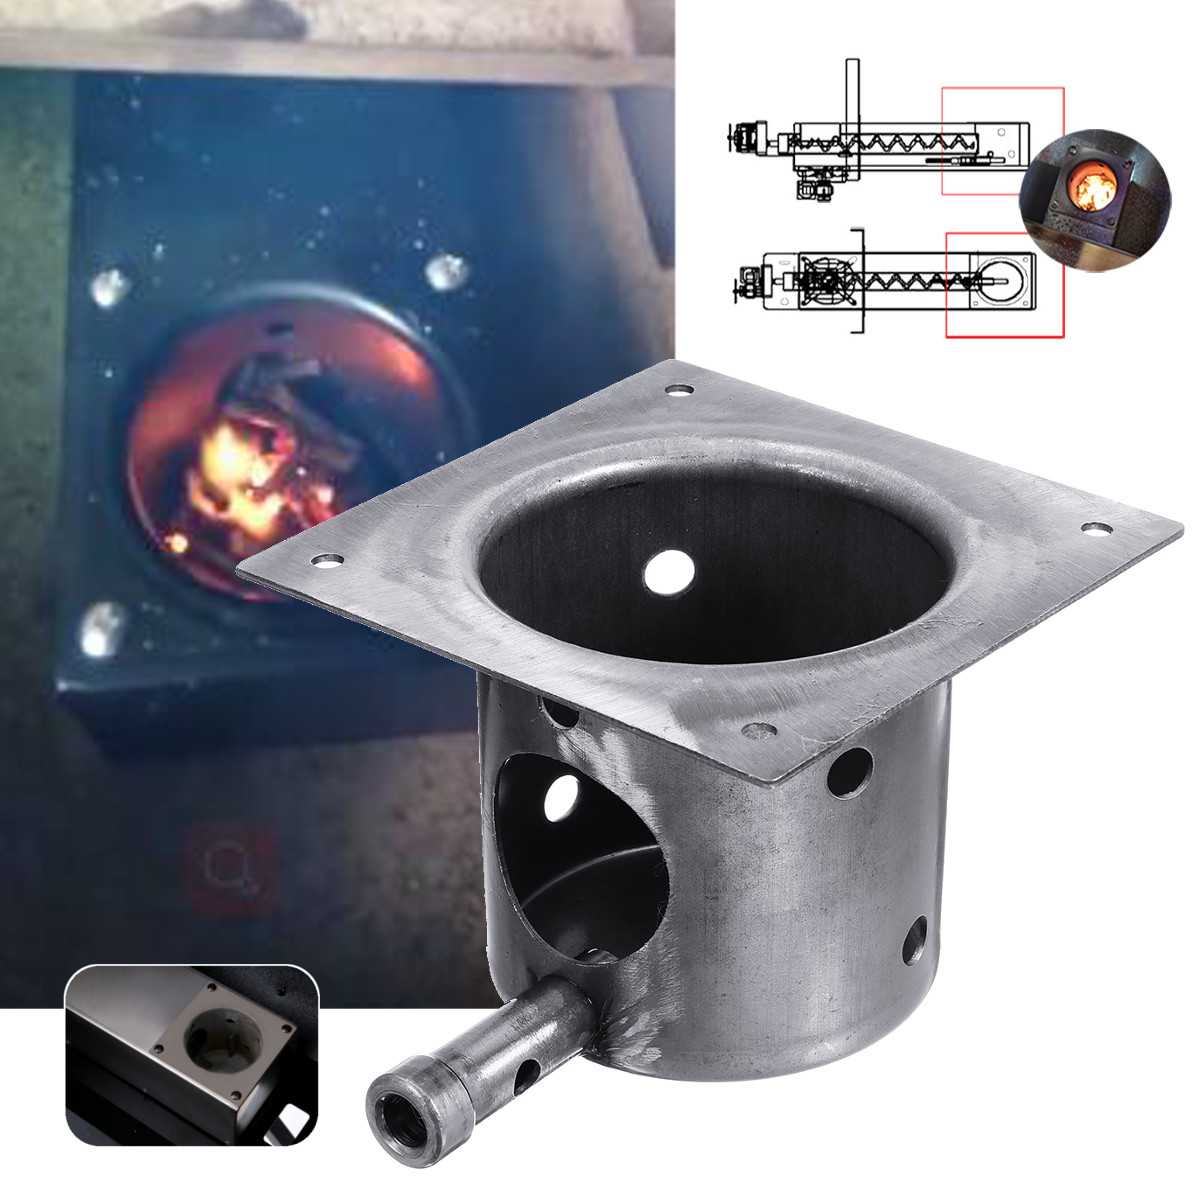 Pellet Stove Iron FirePot Burning Pot Fit For Traeger Grills Replacement Part Kit Fireplace Parts Camping BBQ Accessories